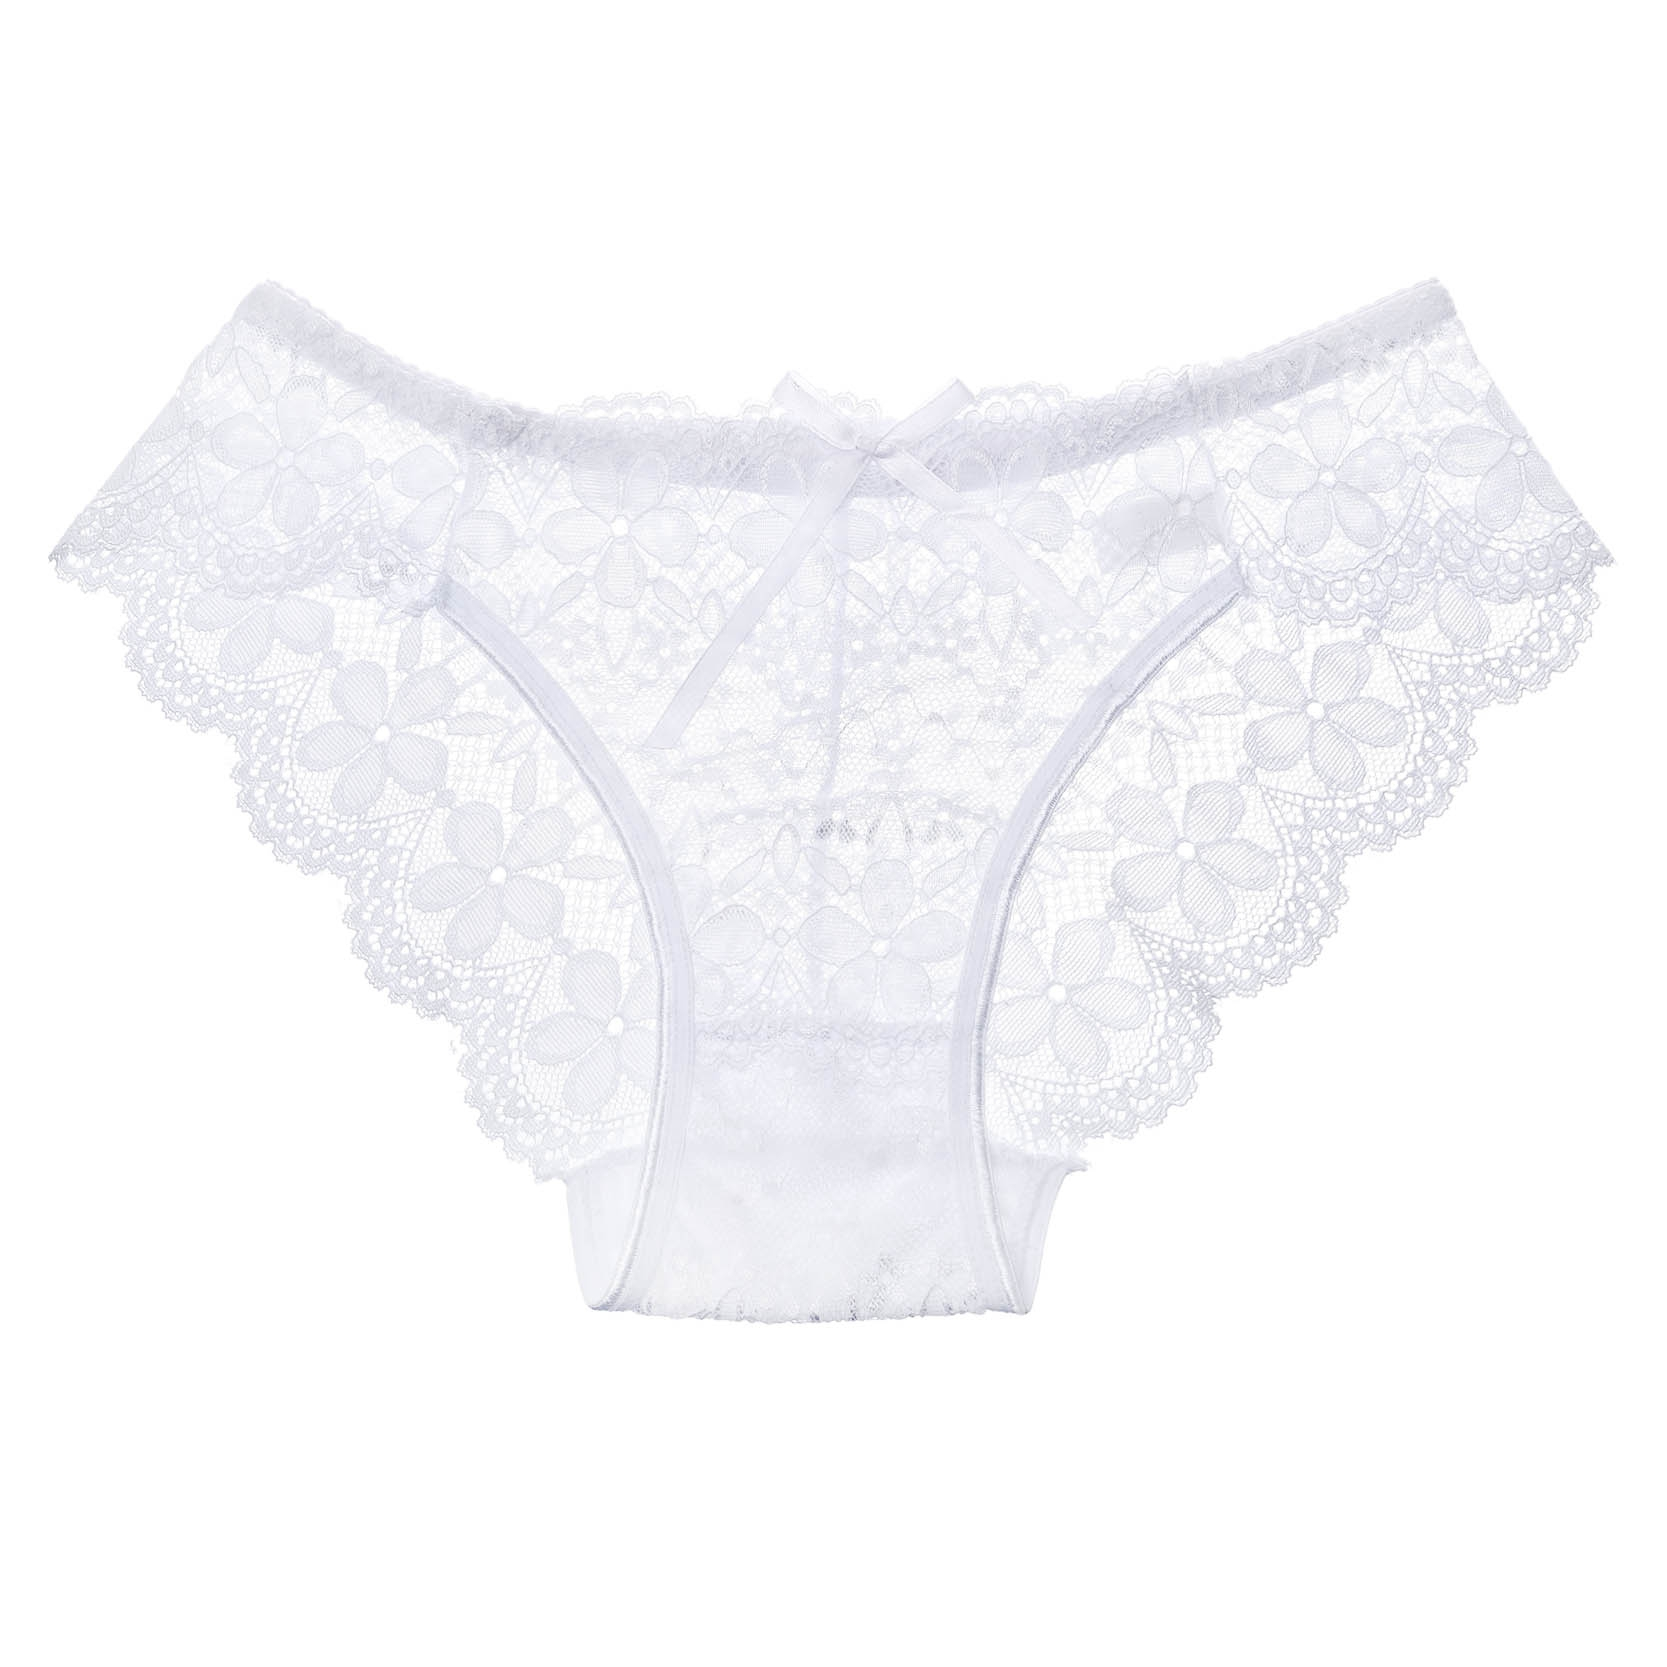 3 Pcs Hot Sale Sexy Lace Seamless Panties Underwear Women Breathable Pantie Hollow Transparent Panties 12